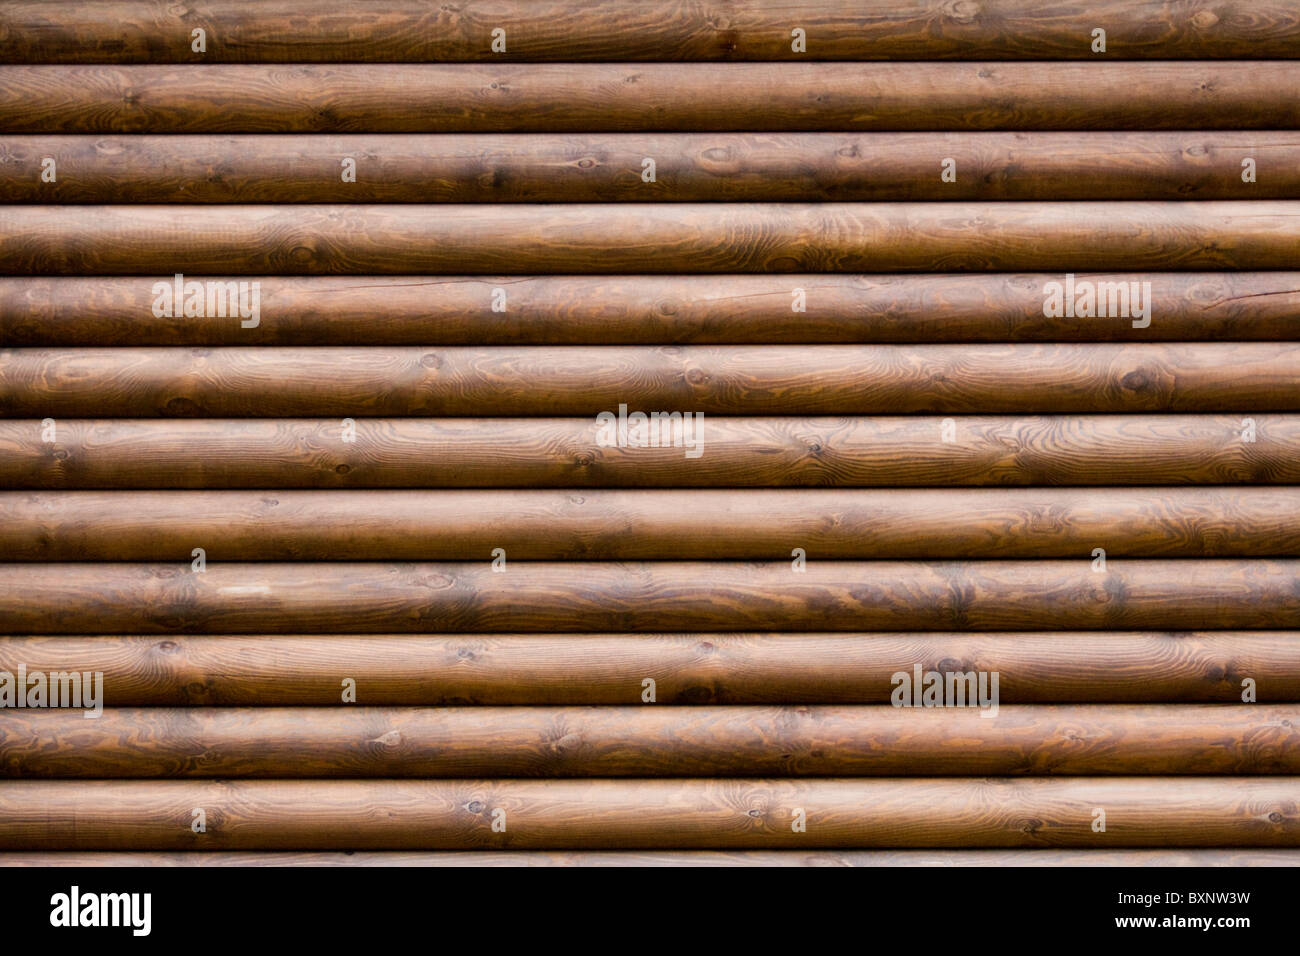 Horizontal image of wooden balks composing izba wall - Stock Image